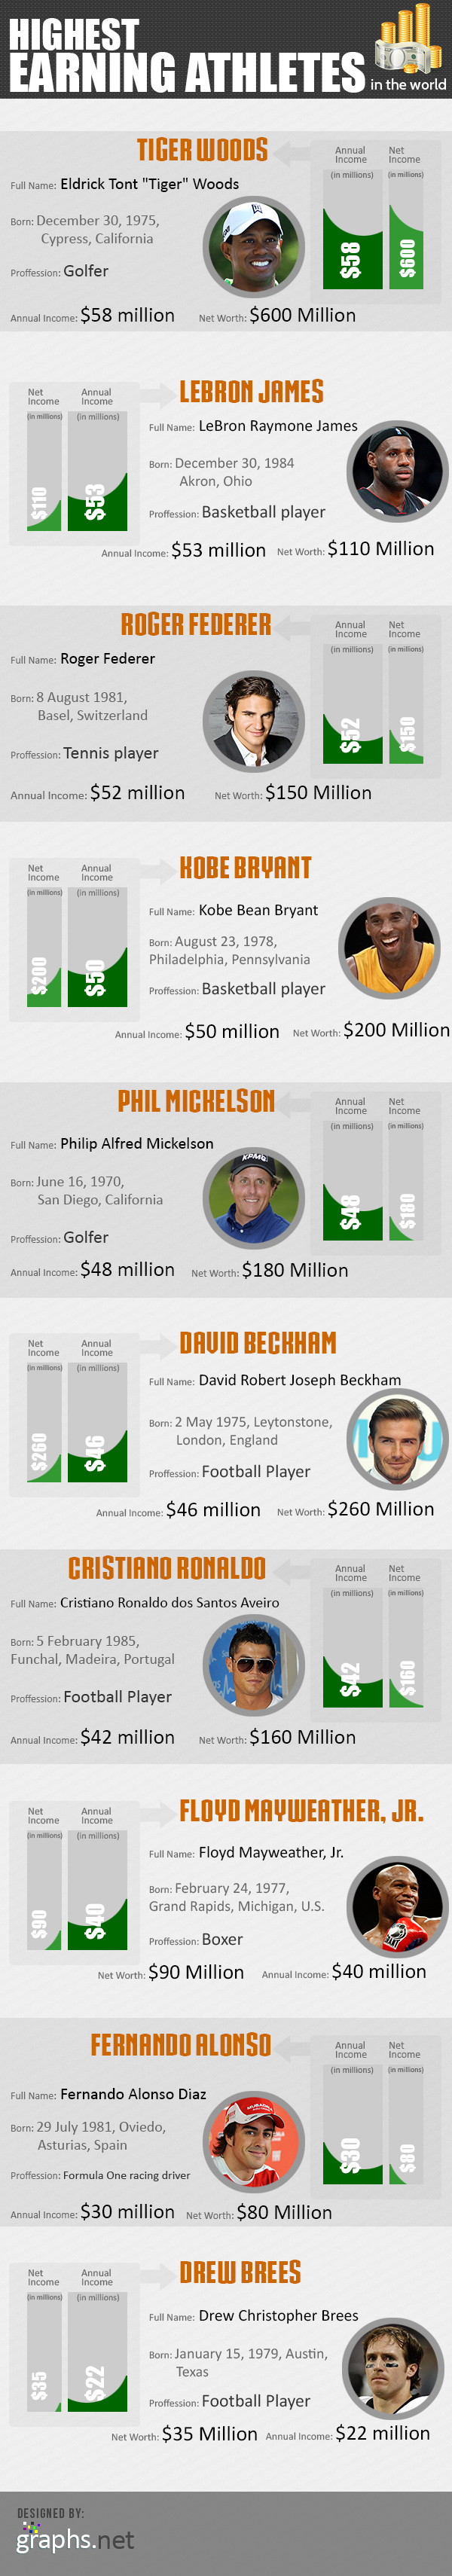 Highest Earning Athletes in the World